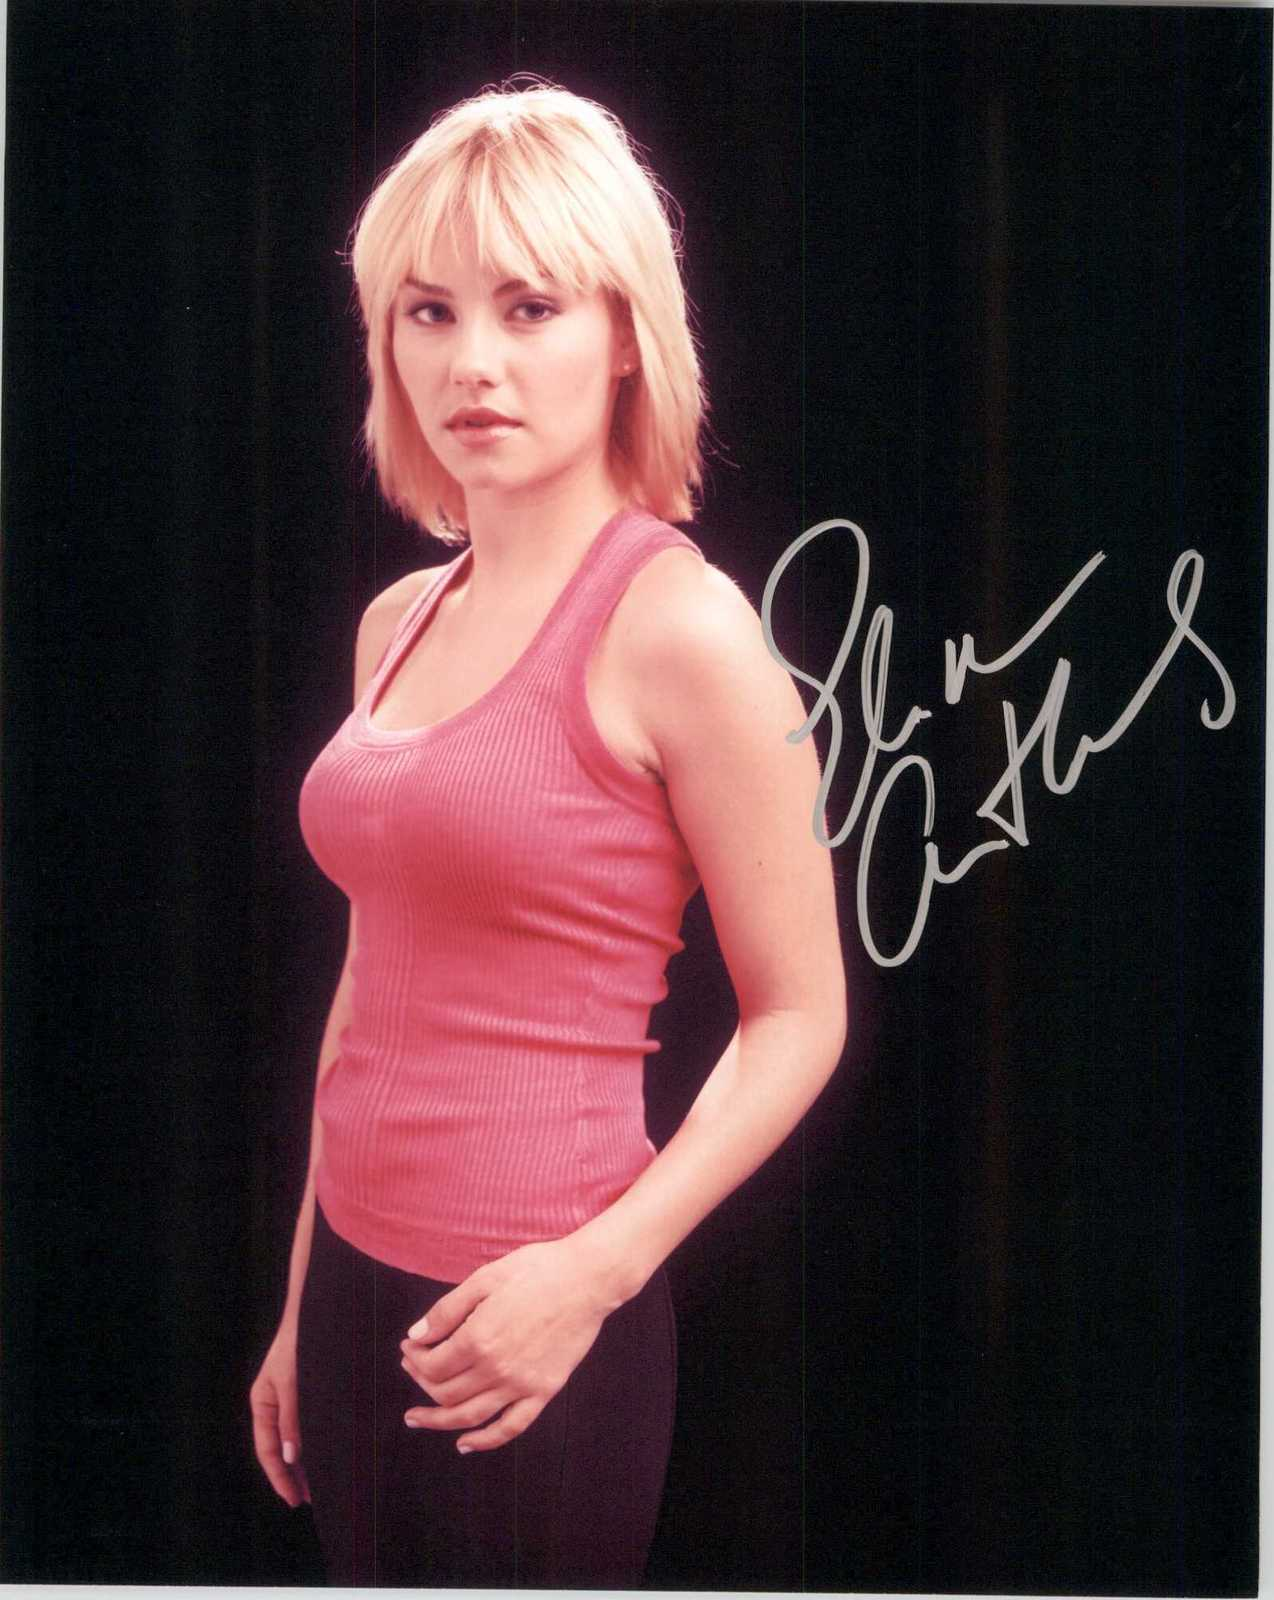 Primary image for Elisha Cuthbert Signed Autographed Glossy 8x10 Photo